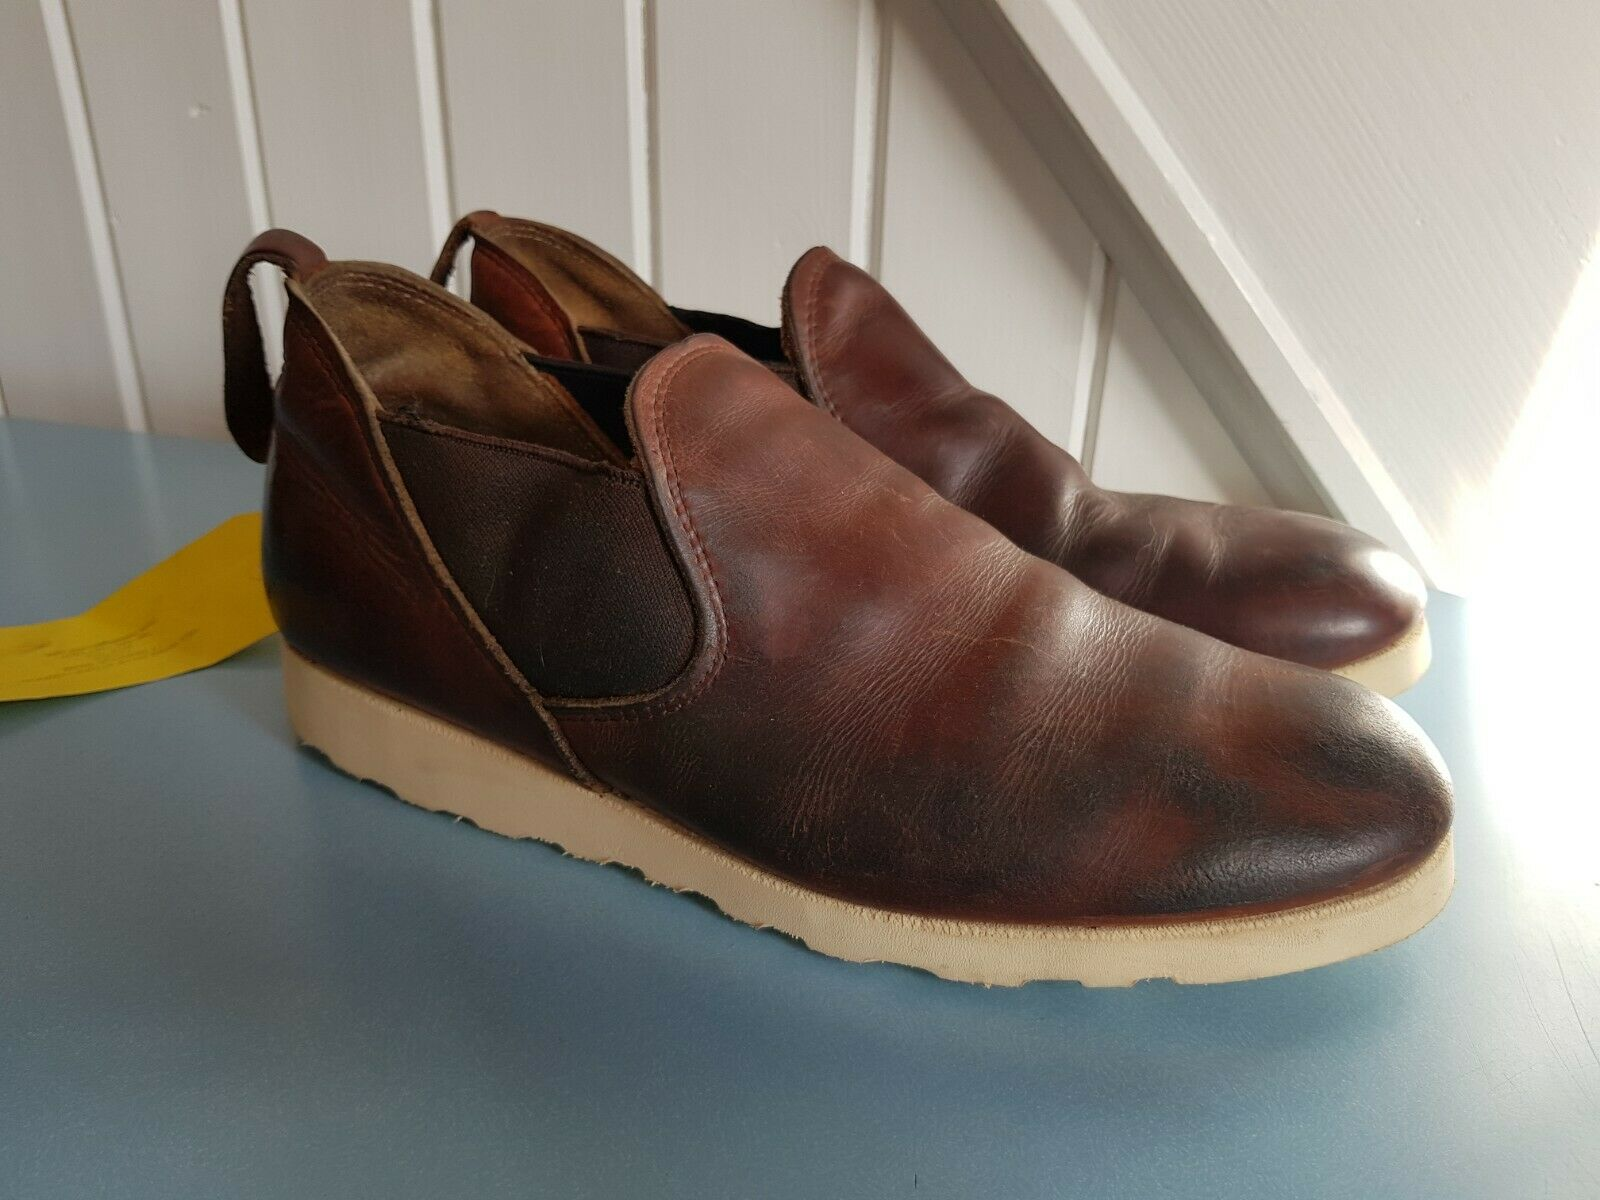 Red Wing Romeo 2143 - RARE in the UK just resoled by Red Wing - not worn since